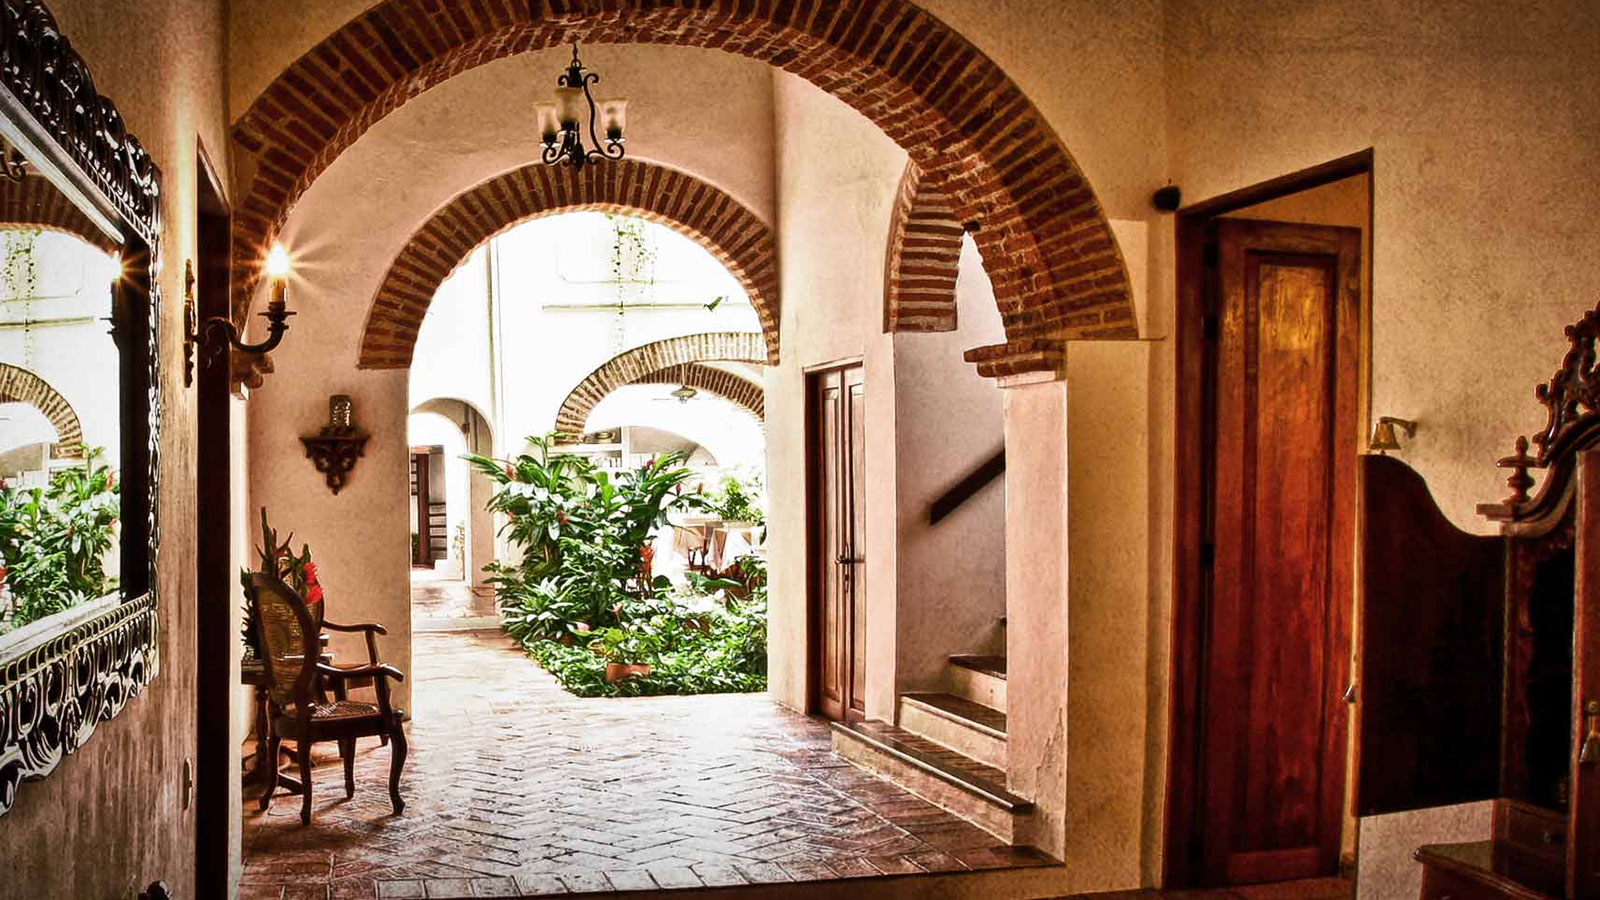 Image of lobby lounge at Alfiz Hotel, 1700, Member of Historic Hotels Worldwide, in Cartagena de Indias, Colombia, Discover